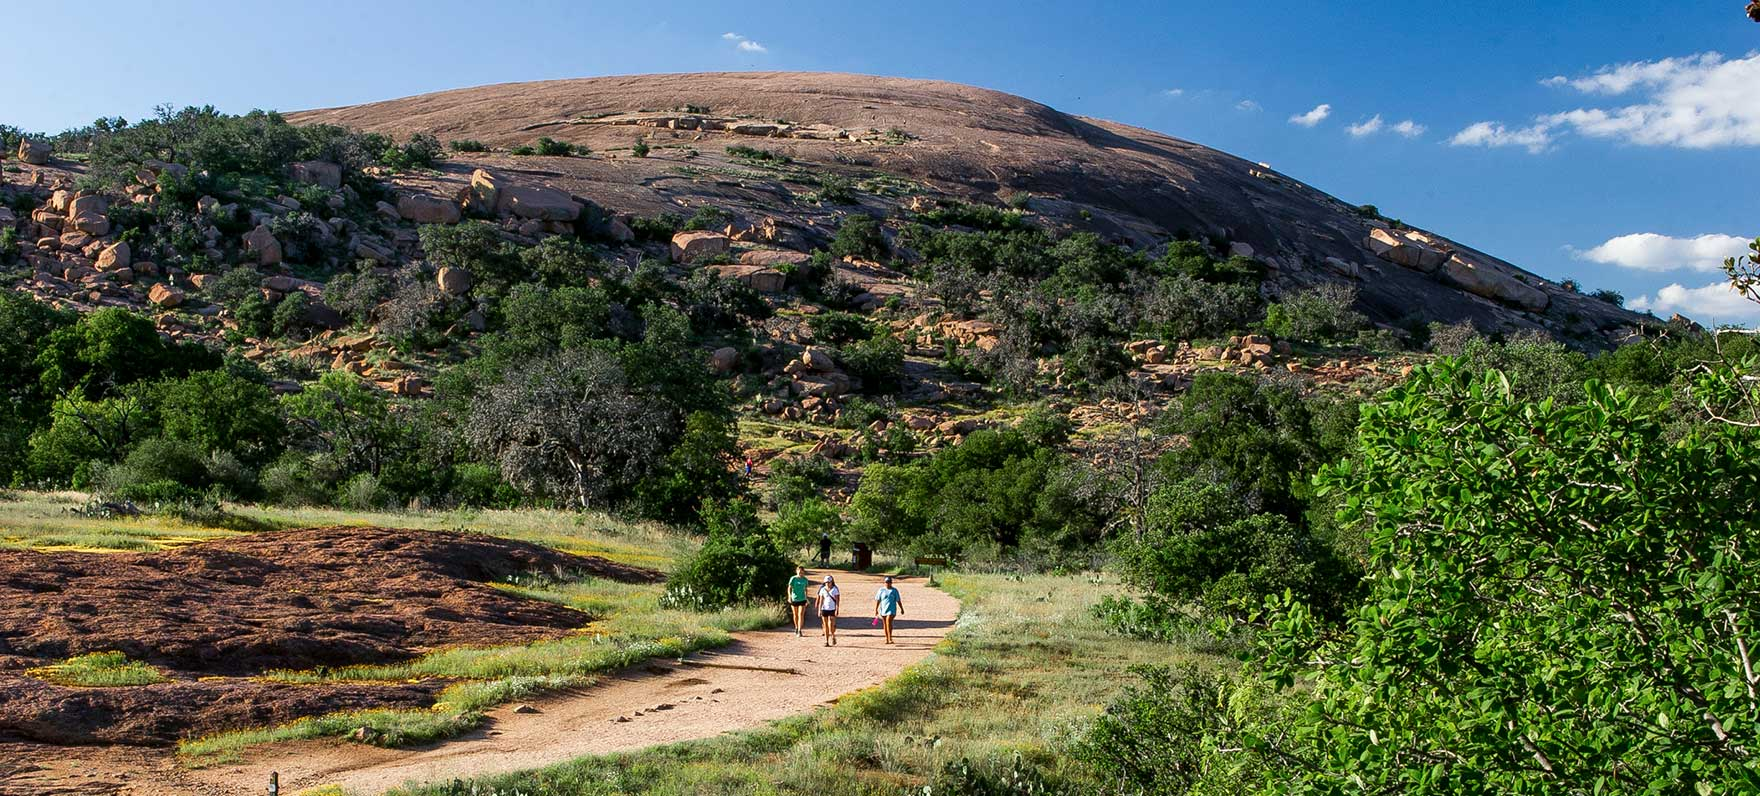 The massive pink granite dome rising above Central Texas has drawn people for thousands of years. Its a great destination for Spring Break in the Hill Country. But there's more at Enchanted Rock State Natural Area than just the dome. The scenery, rock formations and legends are magical, too!